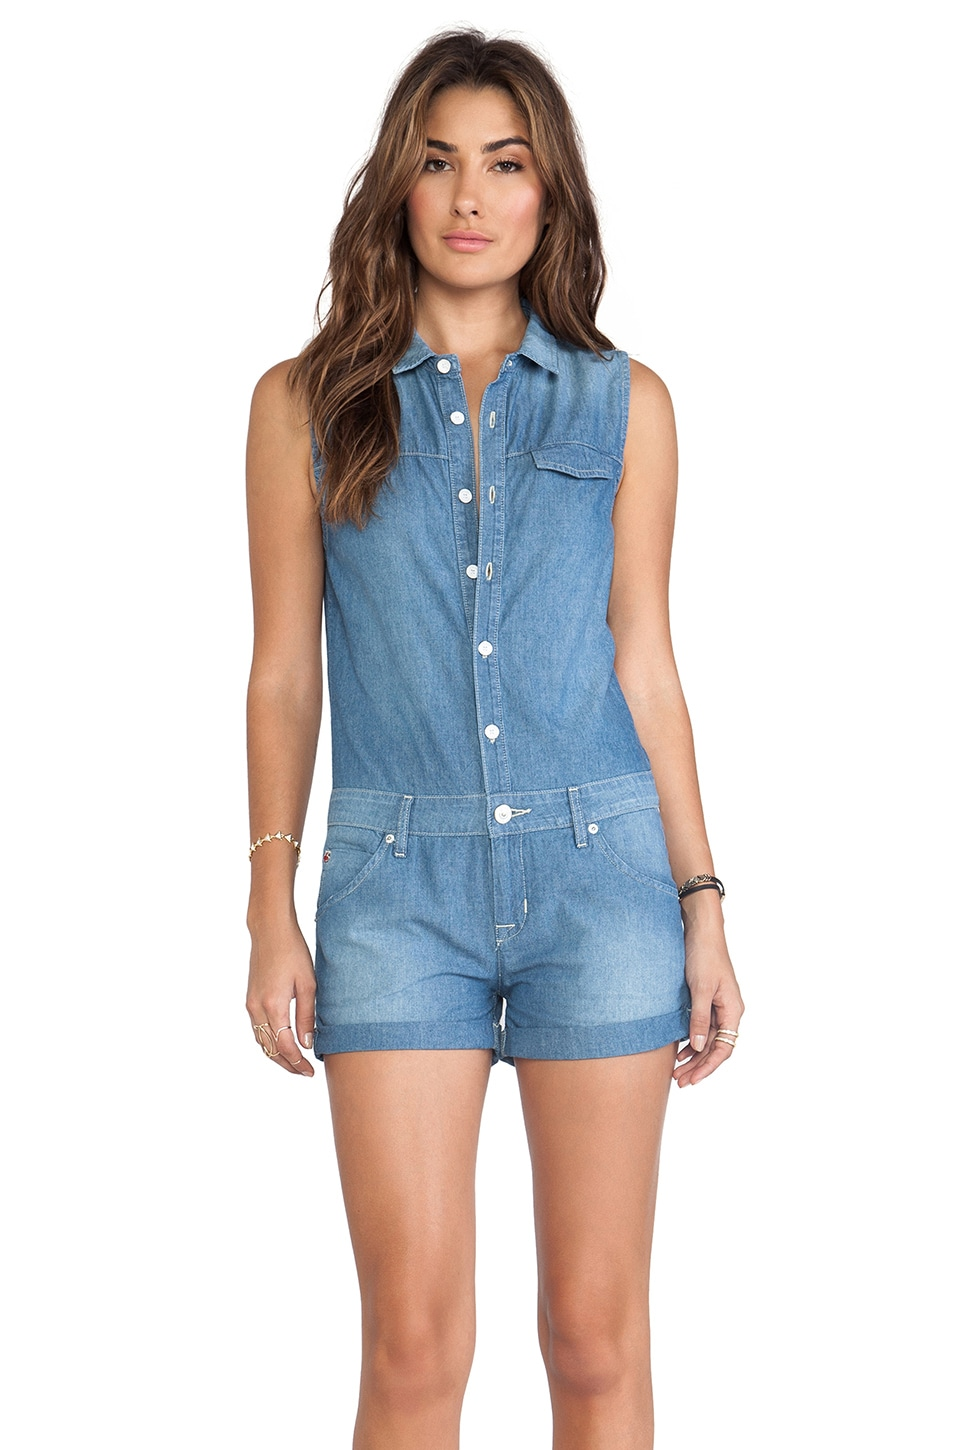 Hudson Jeans Harmony Romper in Borderline